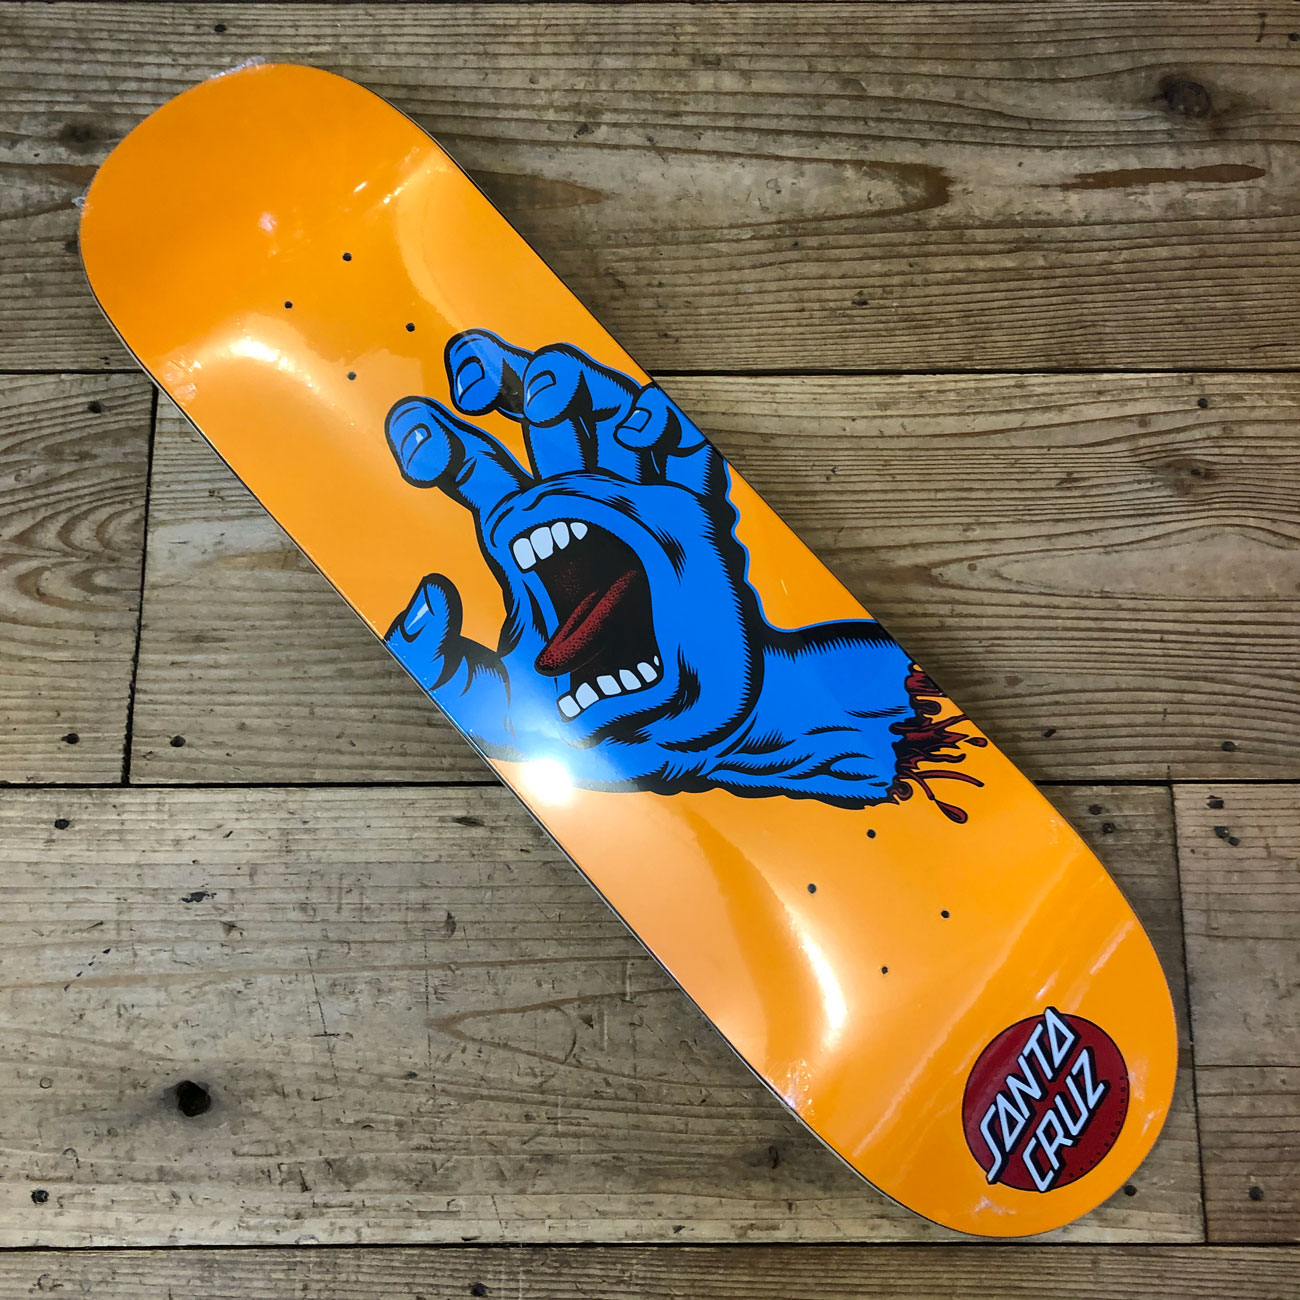 SANTA CRUZ SCREAMING HAND BLUE ORANGE DECK 8.0inch